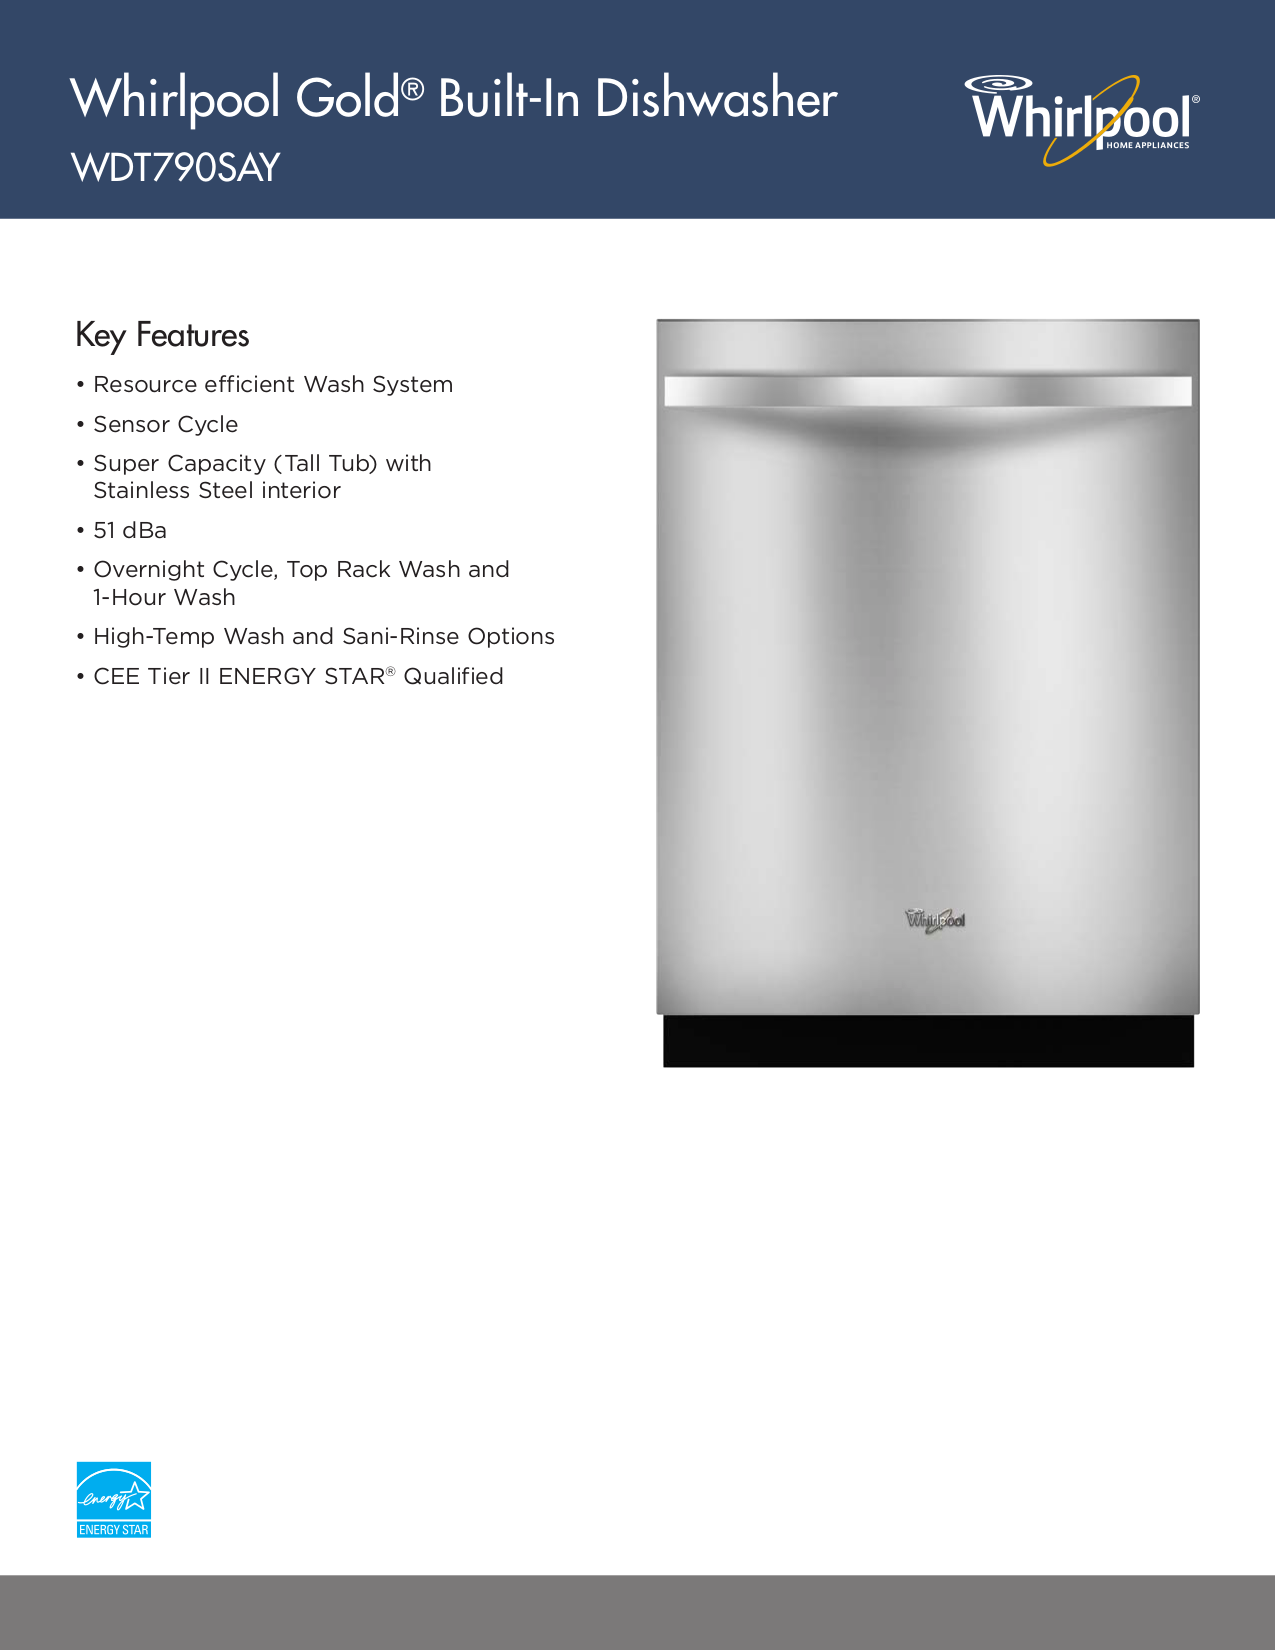 pdf for Whirlpool Dishwasher WDT790SAY manual